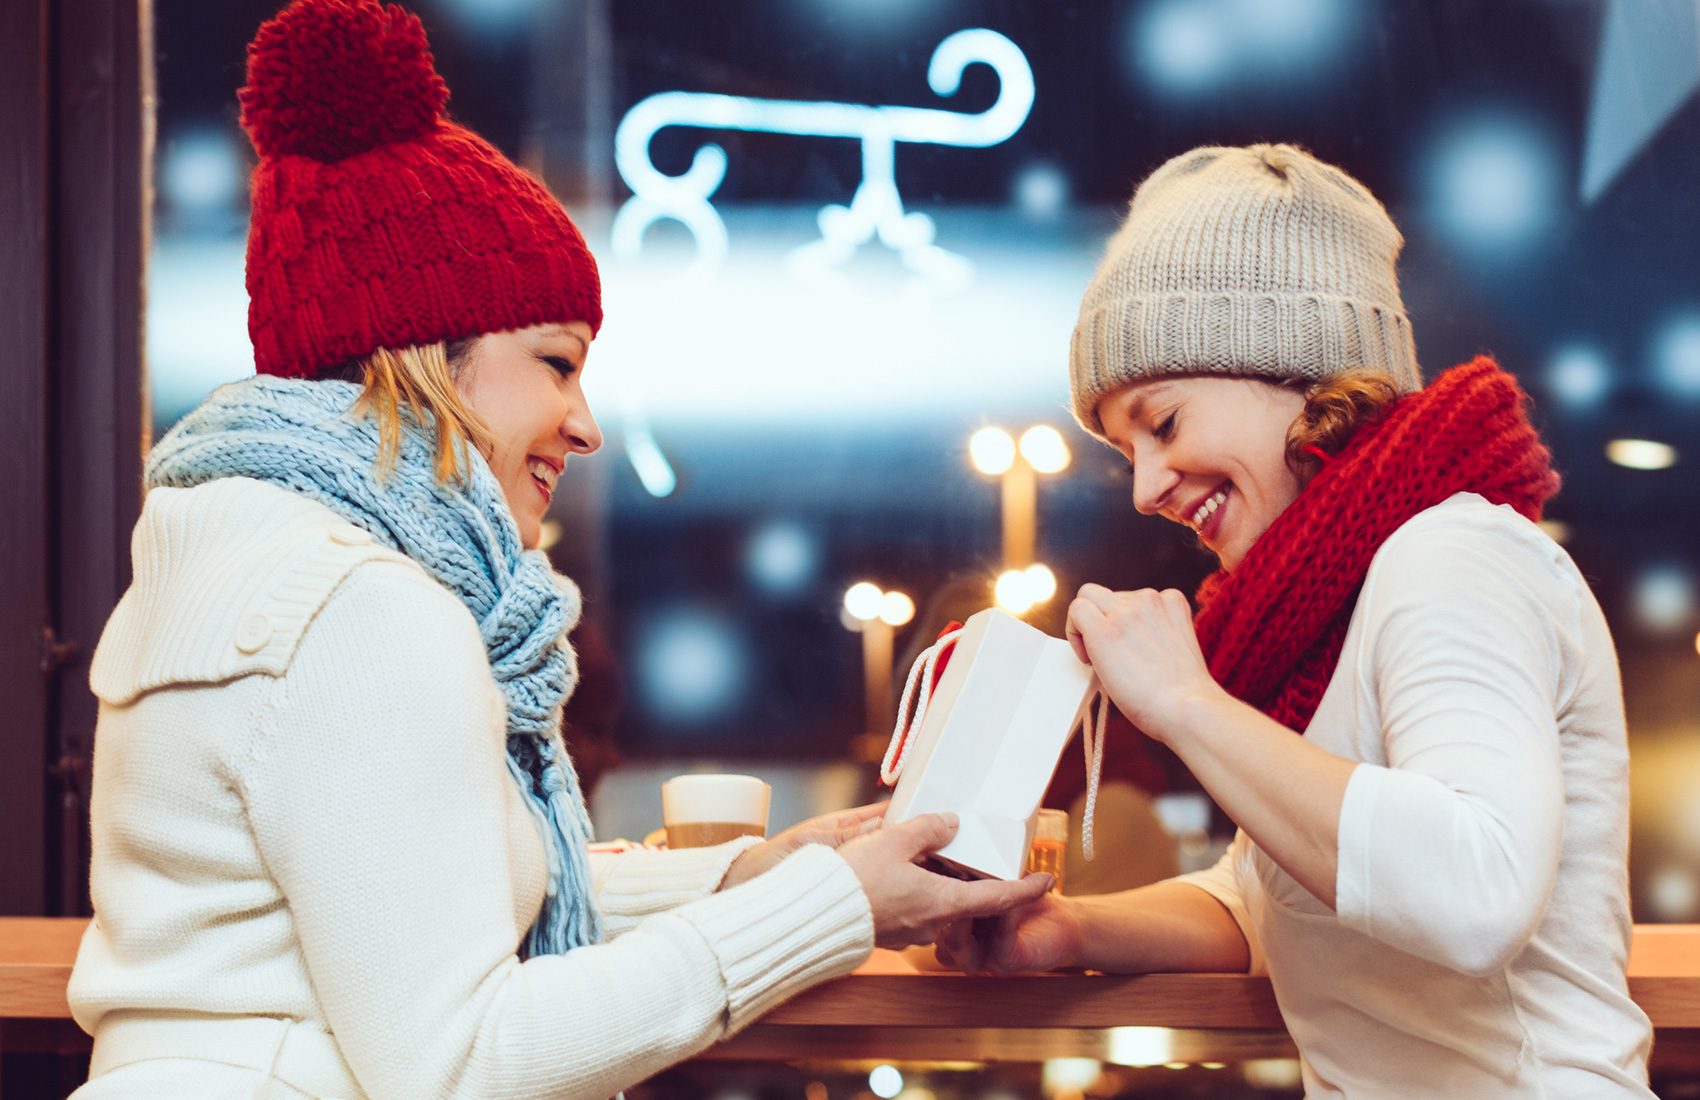 Two women in scarves and knit hats exchanging gifts